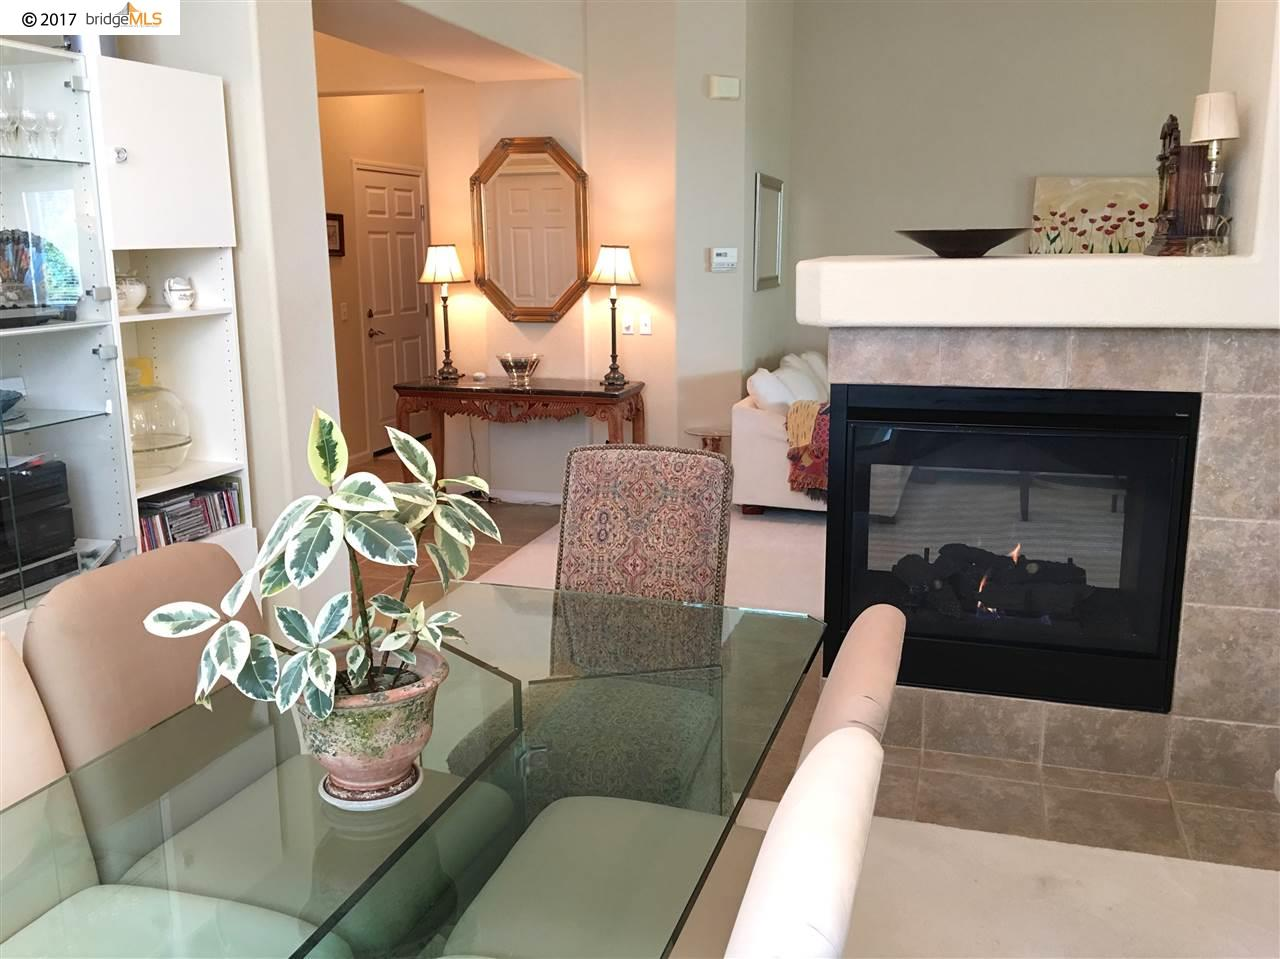 Additional photo for property listing at 1030 BISMARCK TERR  Brentwood, California 94513 United States